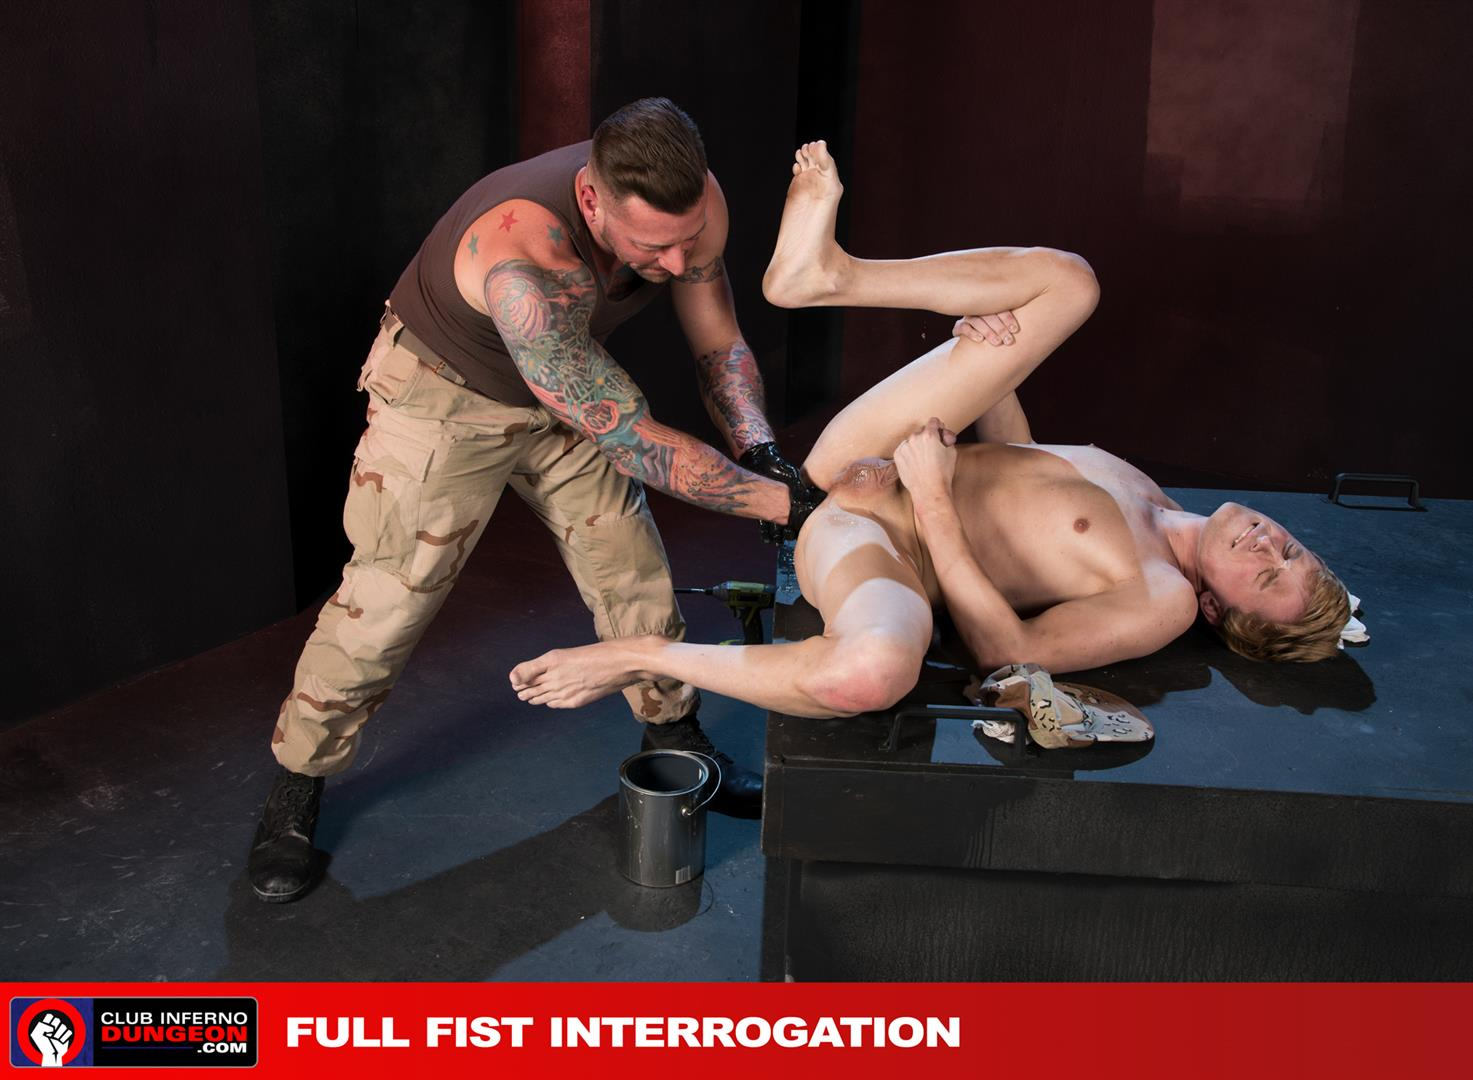 Full Fist Interrogation